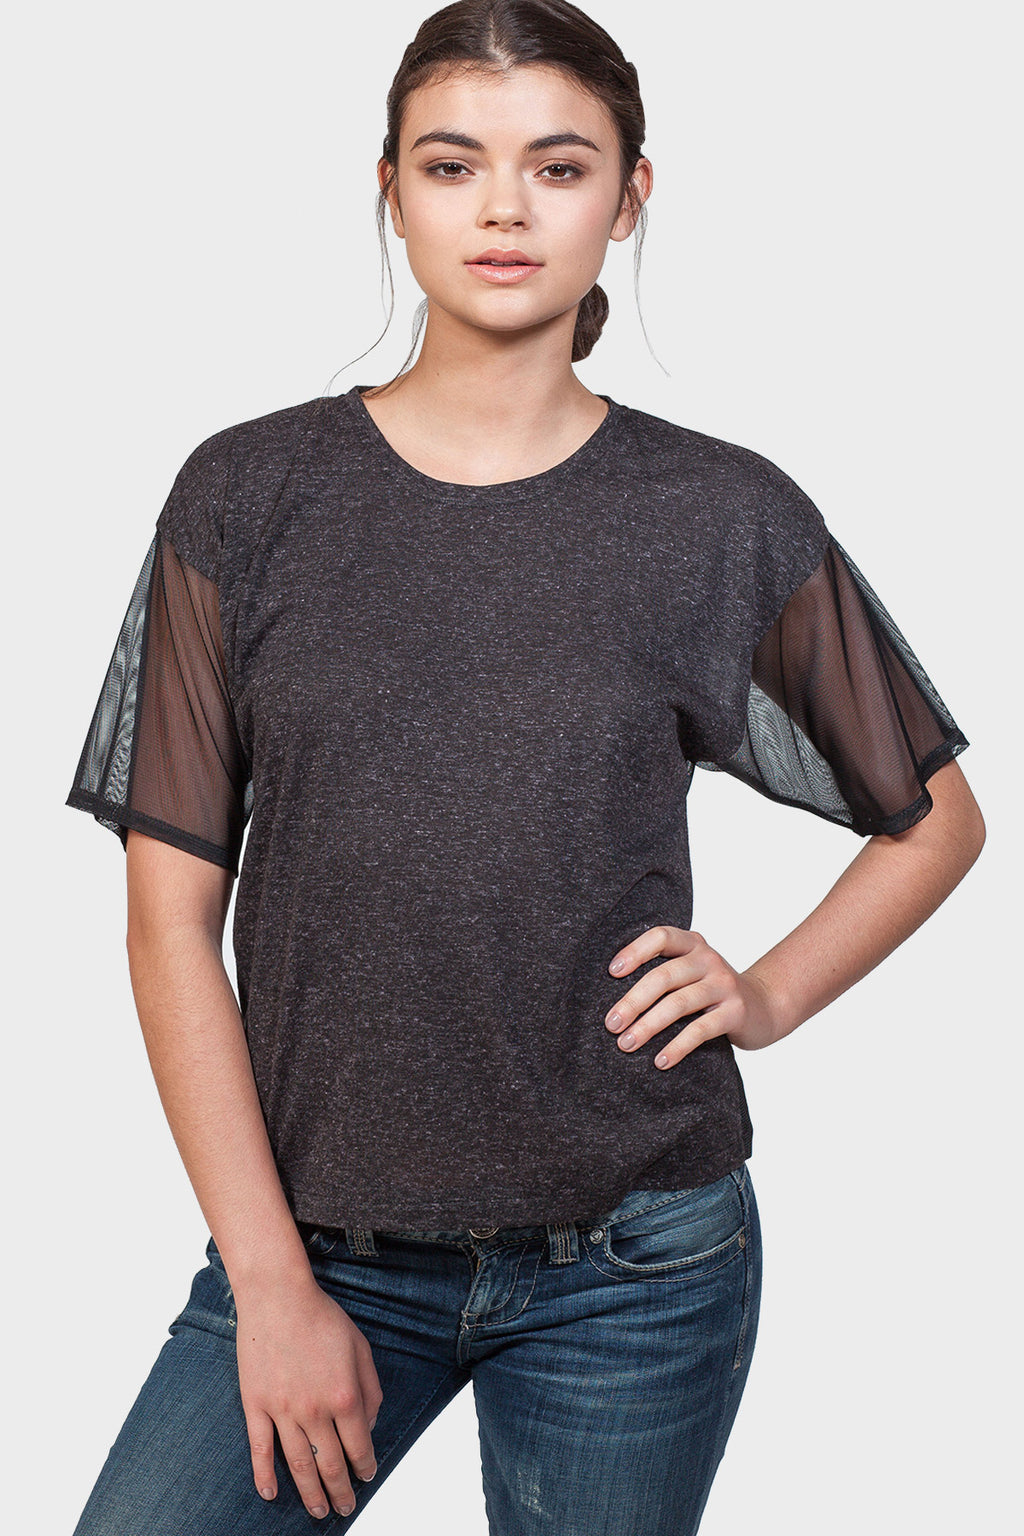 337 BRAND Women's Basic T-Shirt with Mesh Details